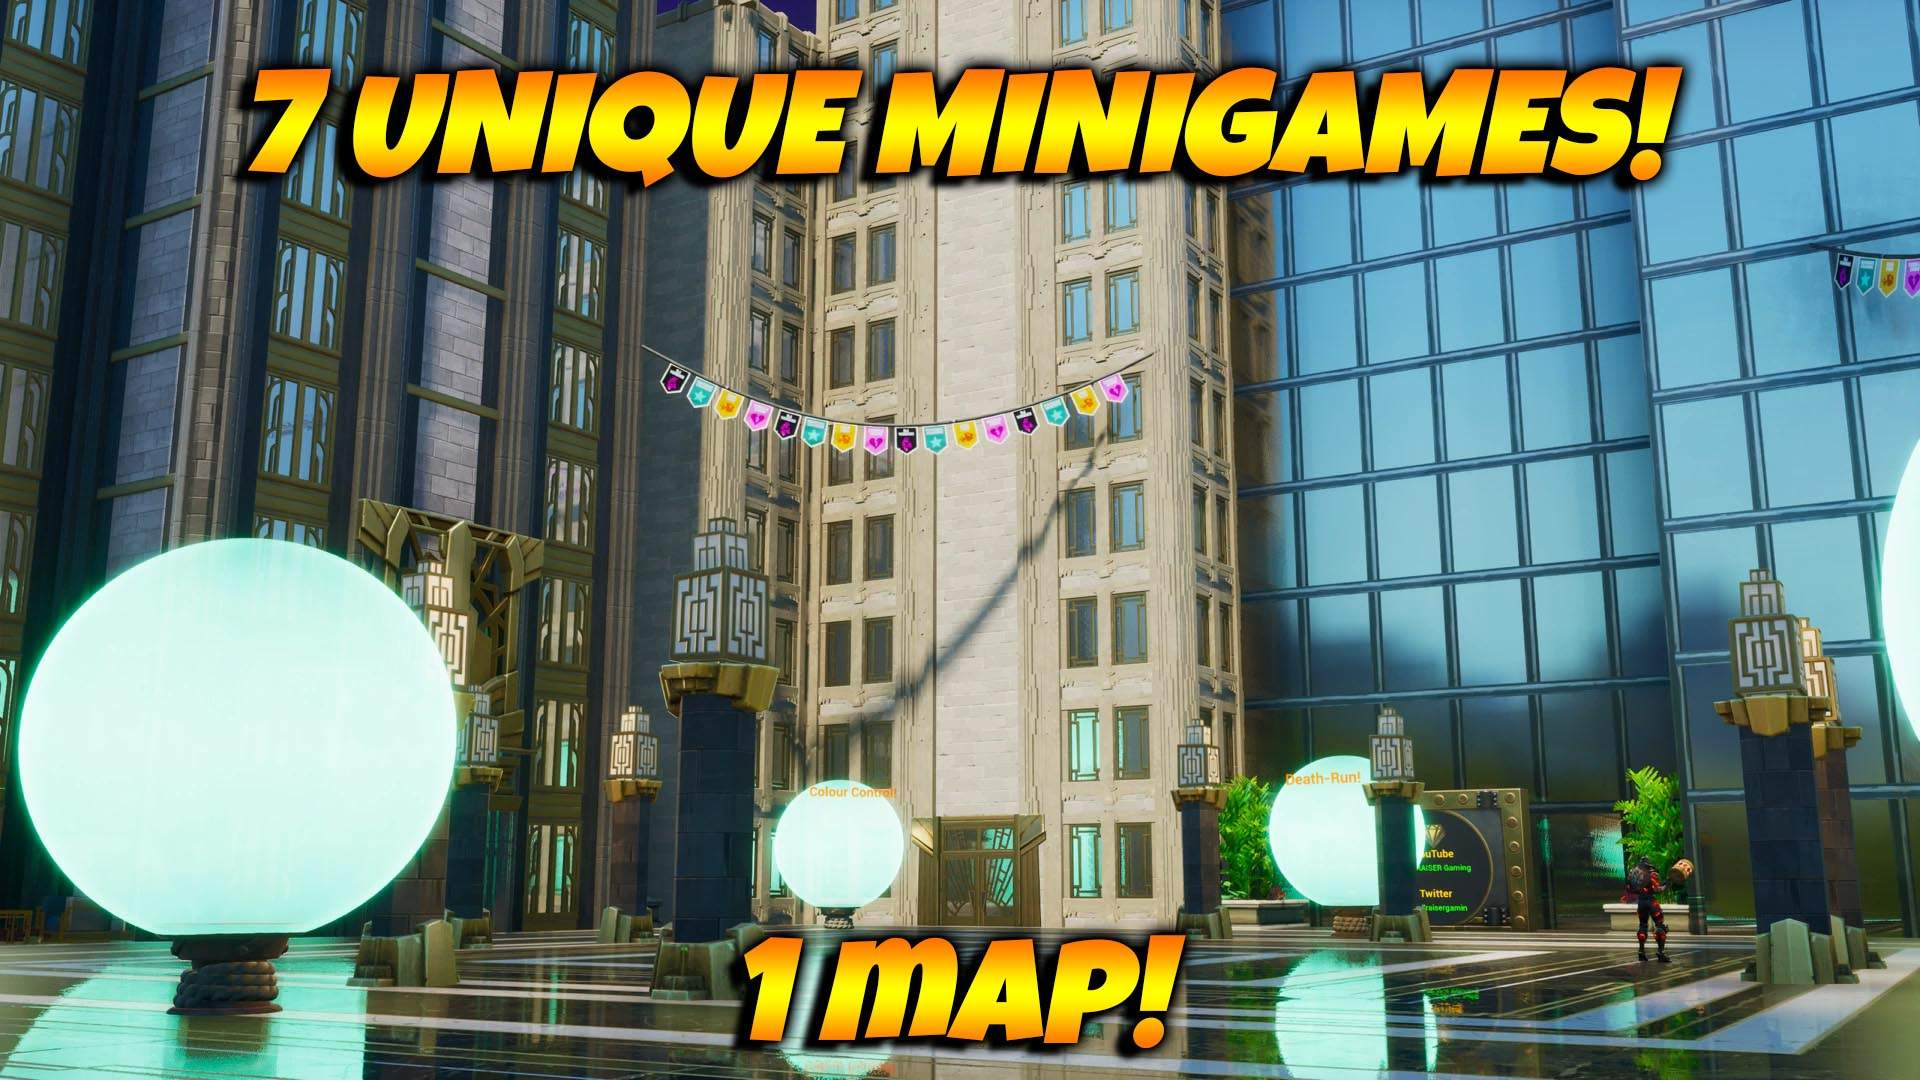 MINI GAME CITY!